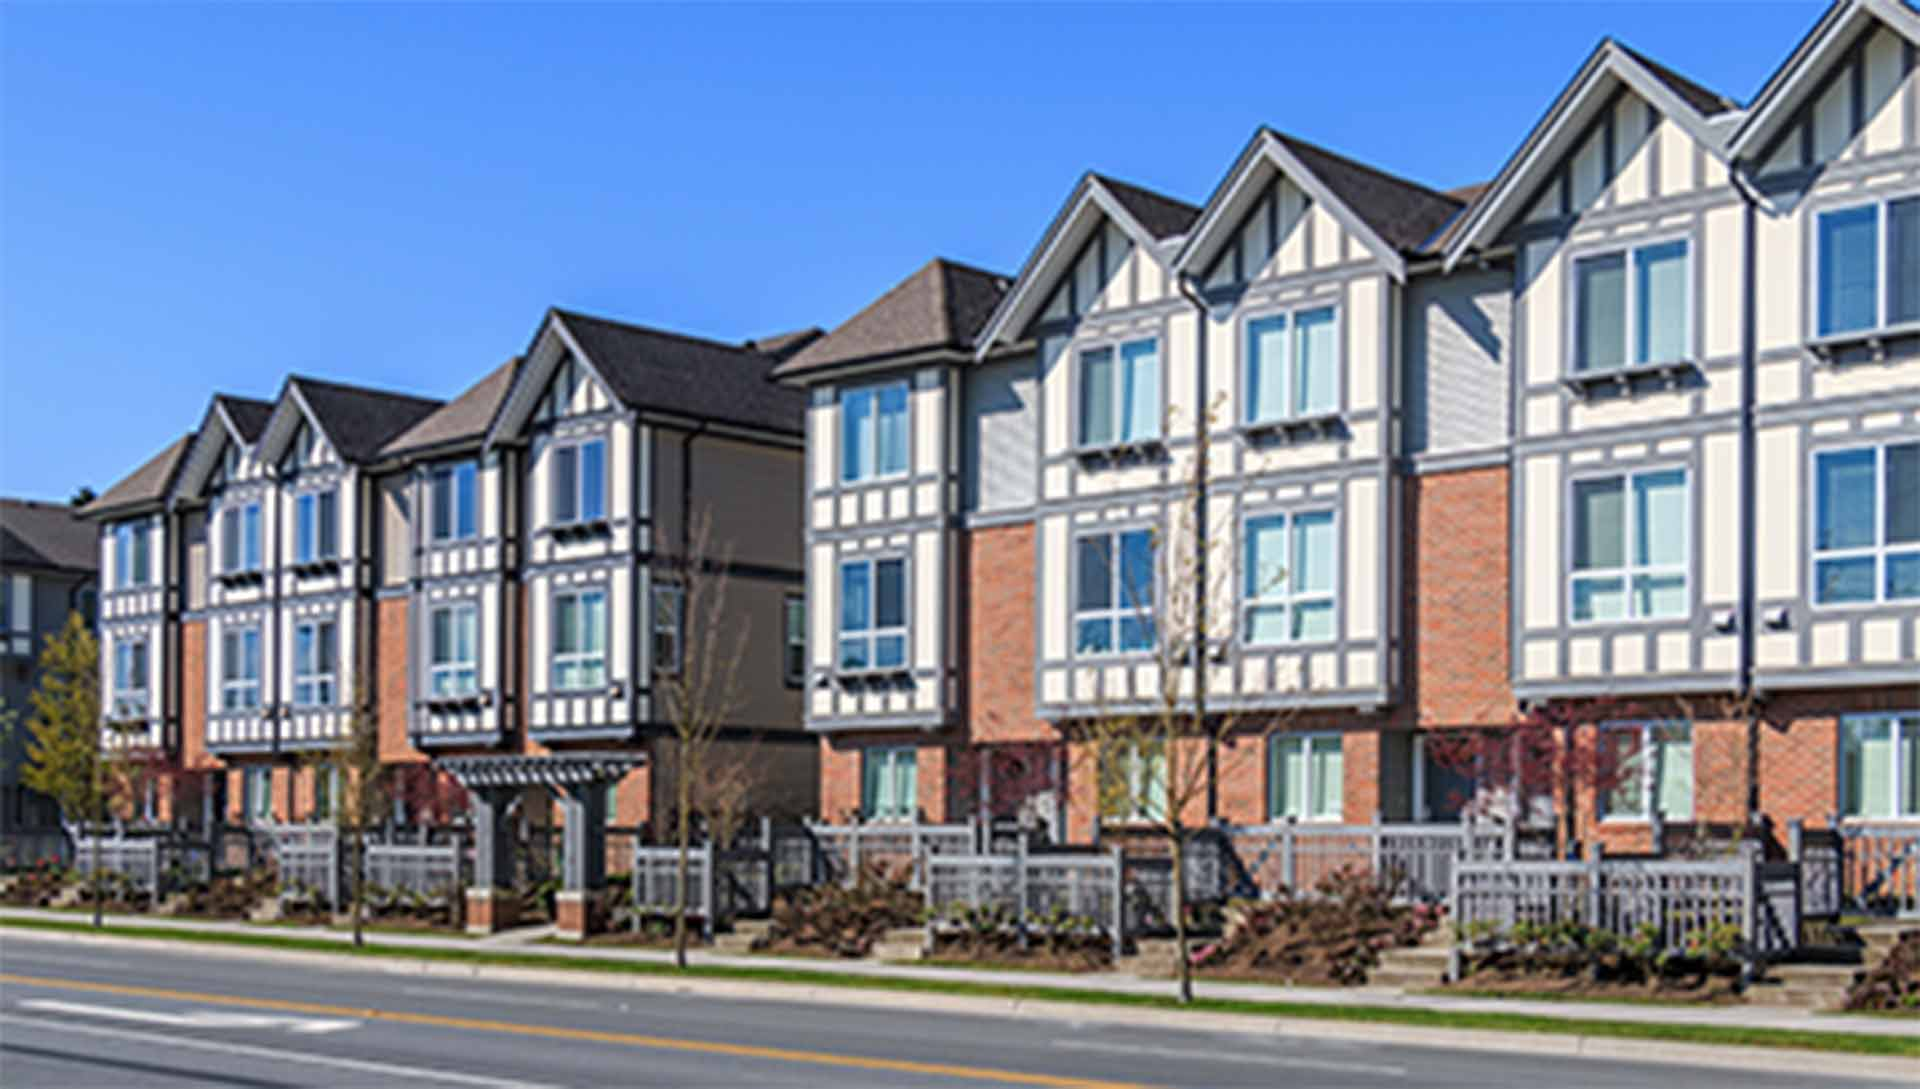 A photo of a row of town home condos that have Northern Comfort Windows and Doors Installed.